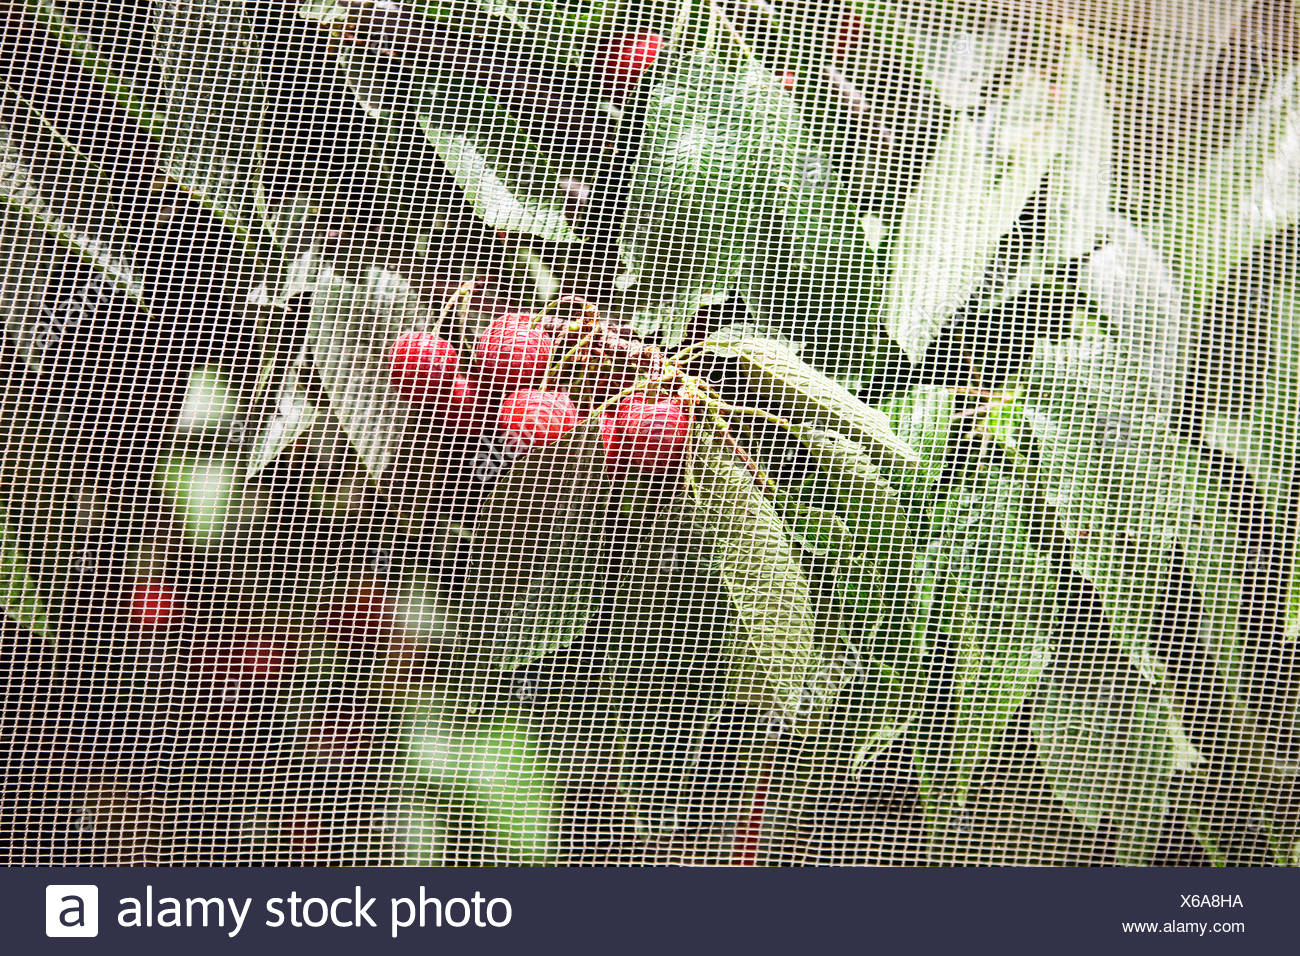 Cherries growing on a tree behind netting - Stock Image